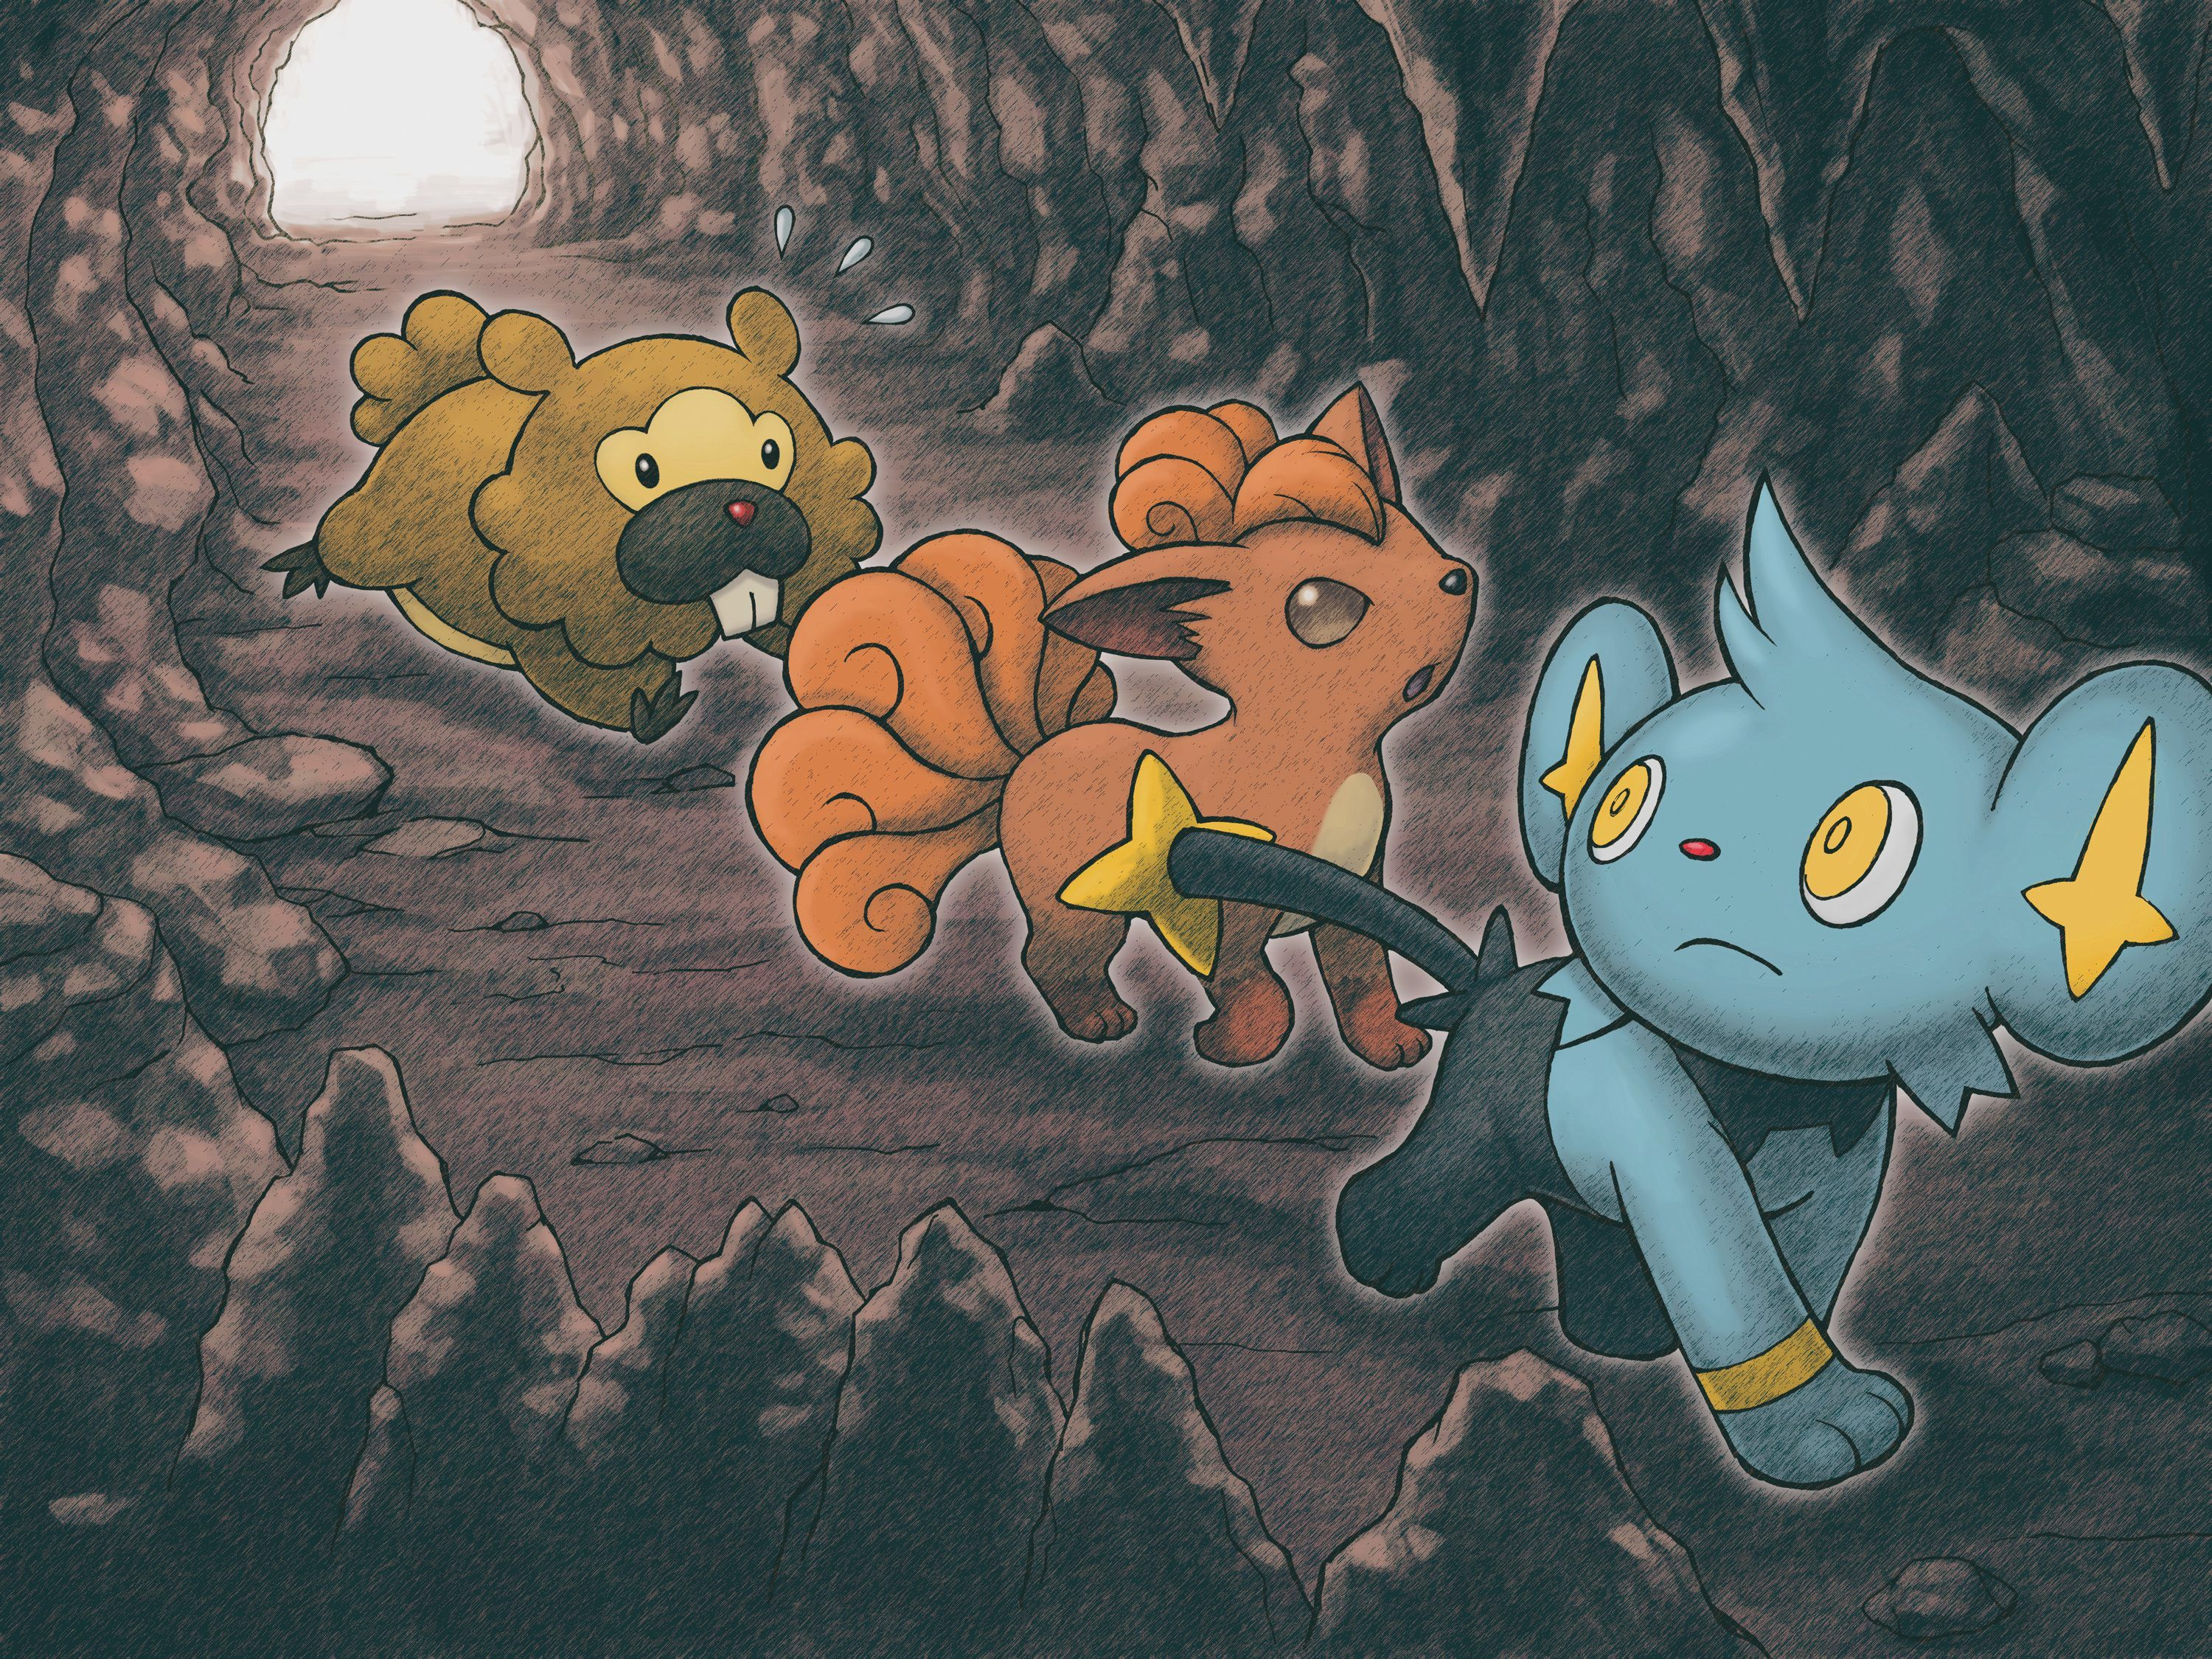 4 Shinx (Pokémon) HD Wallpapers | Background Images - Wallpaper Abyss